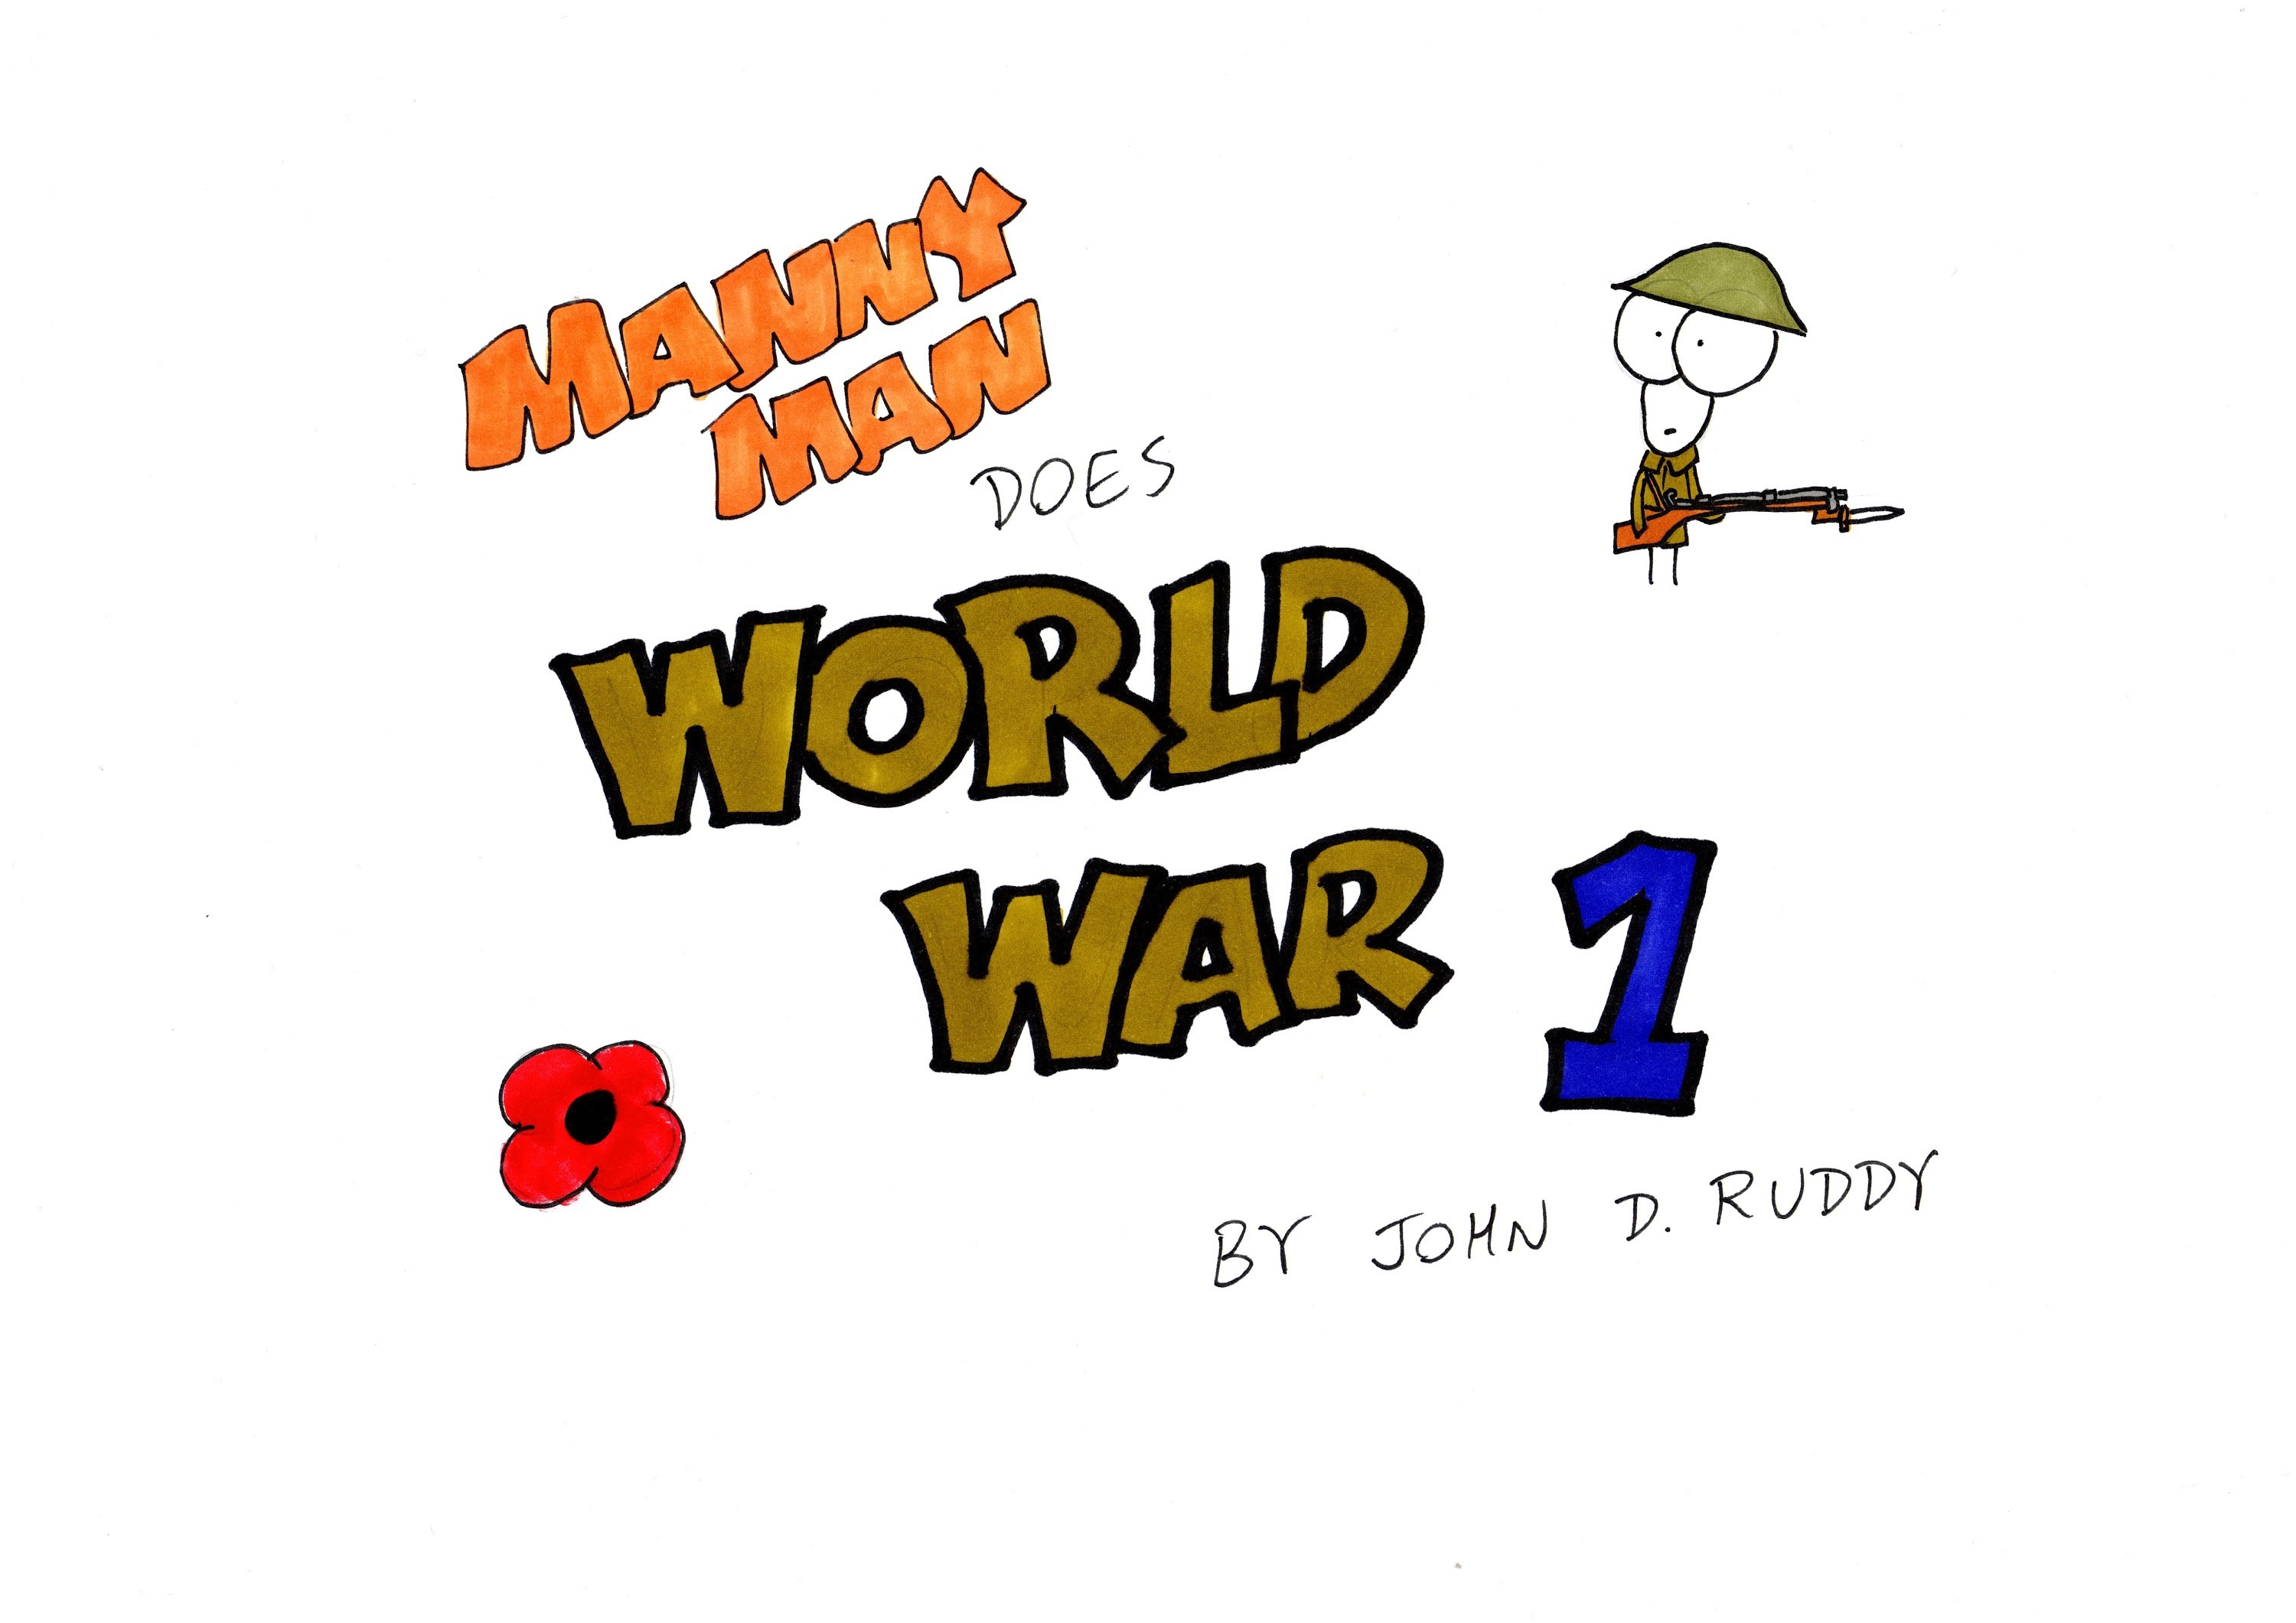 World War I Explained in 6 Minutes with Illustrations of Soldiers and Maps